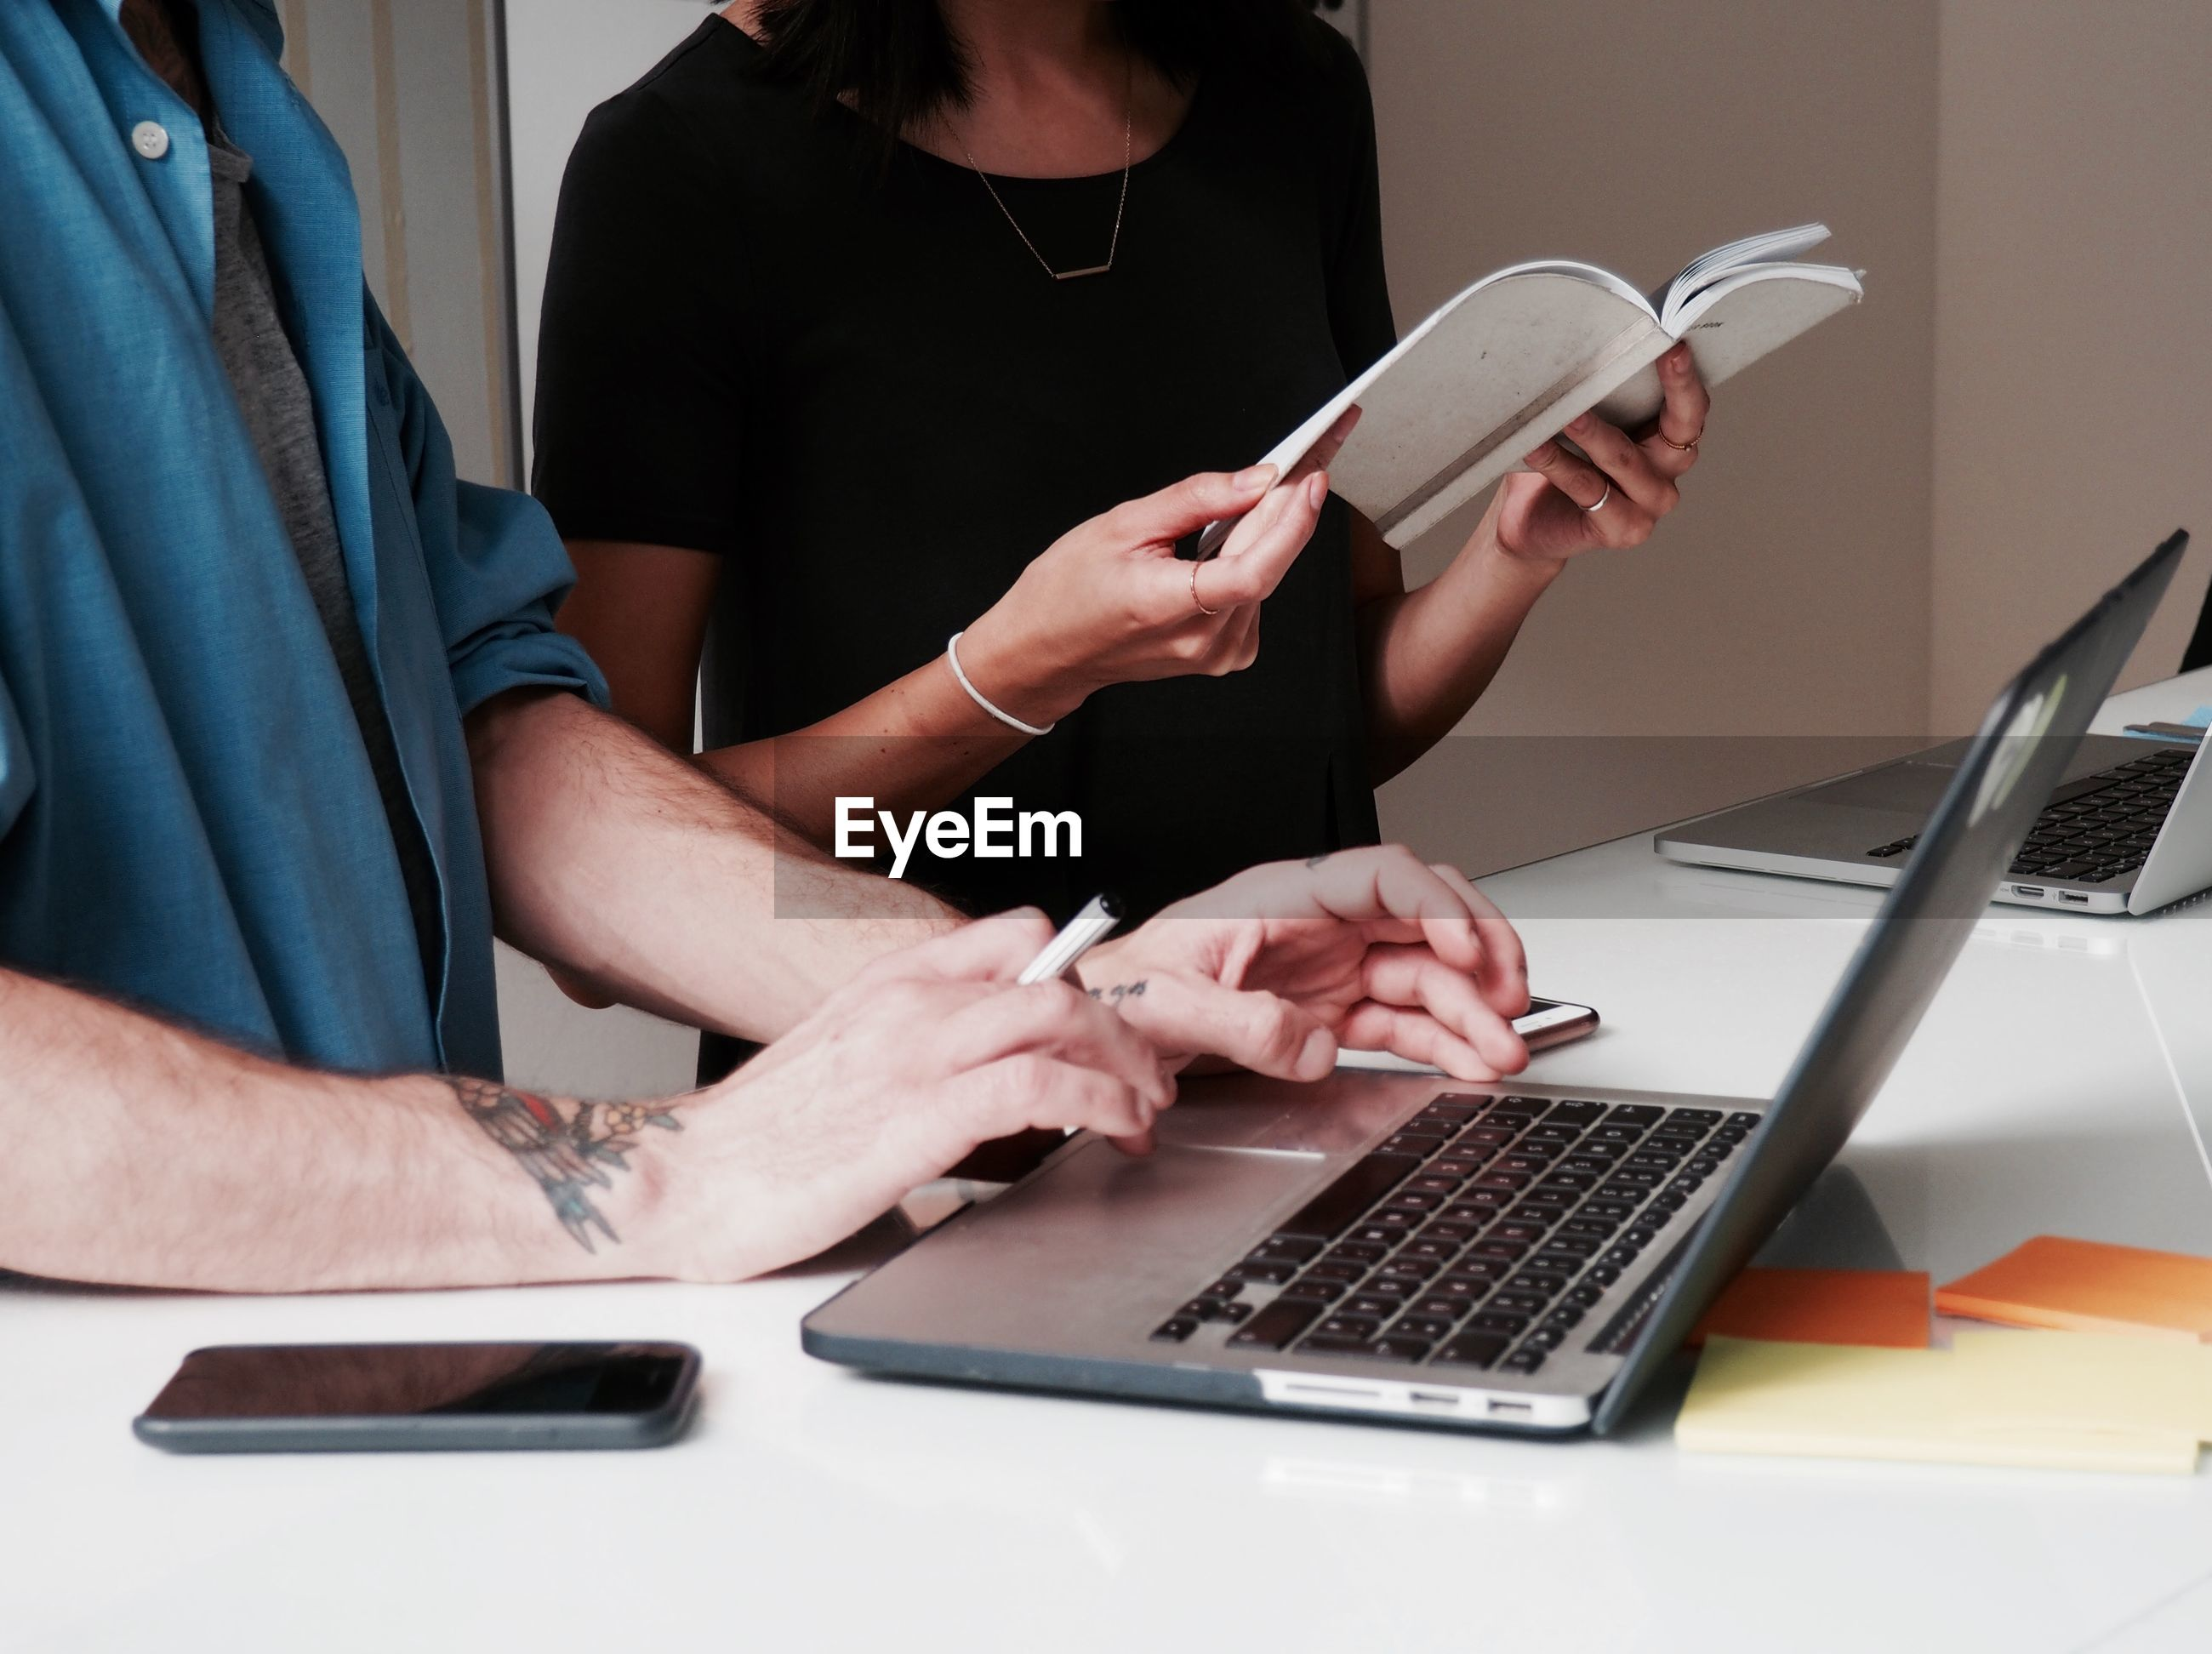 Midsection of man with woman using laptop at desk in office